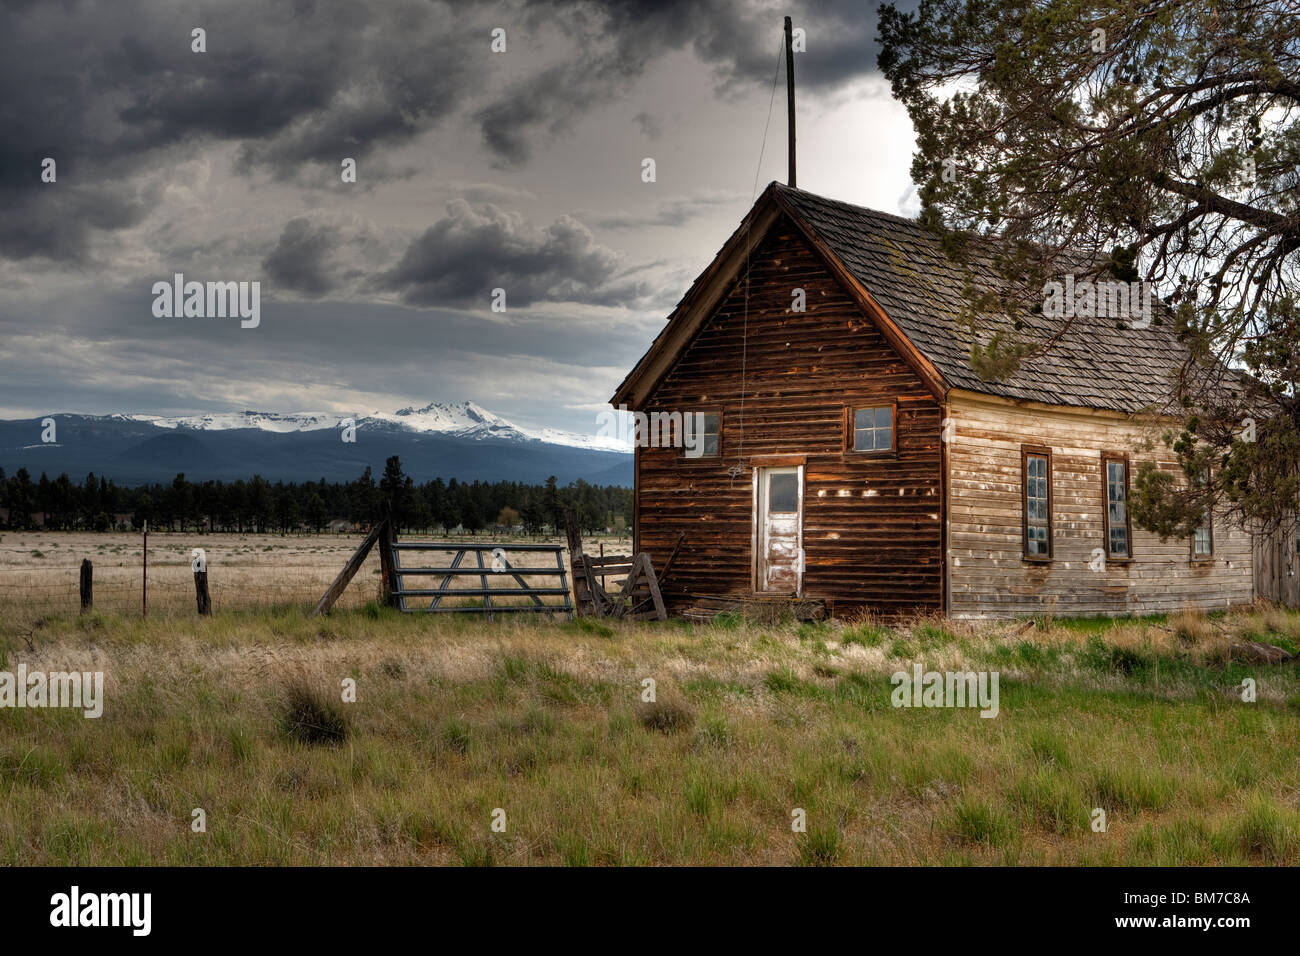 HDR Landscape Old School House With Dramatic Sky Stock Photo